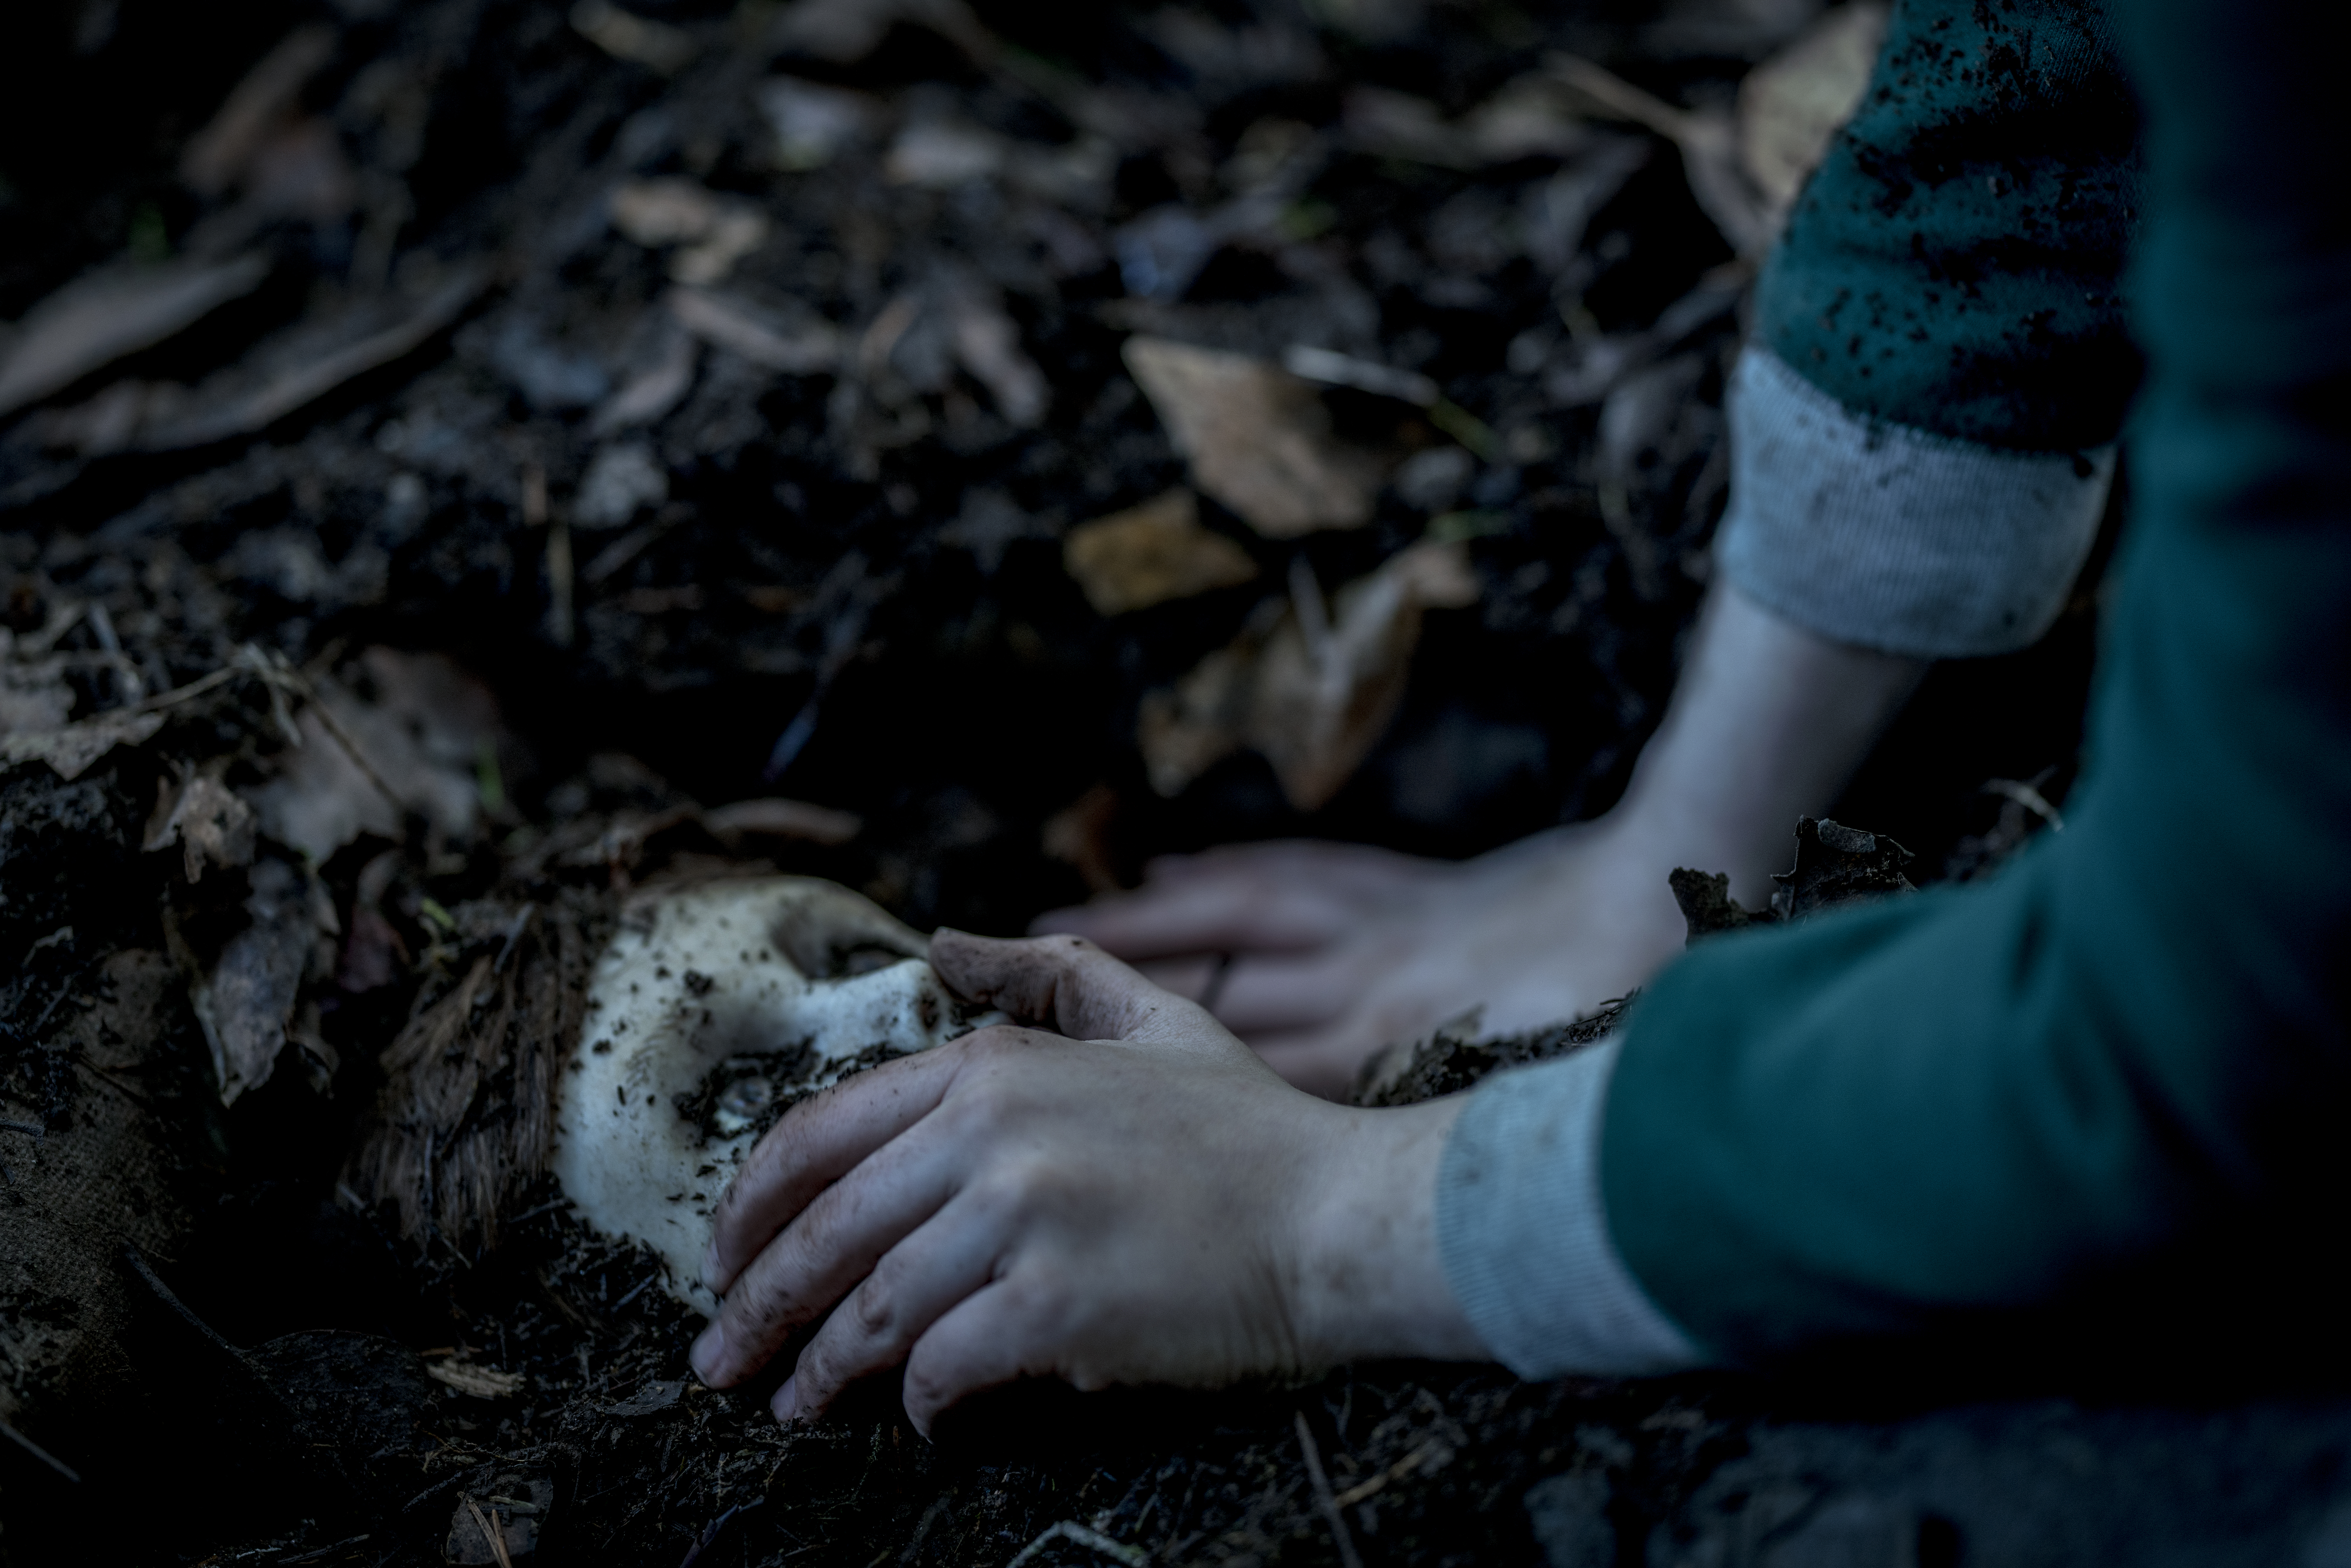 Grubby hands uncover the dirty white face of an evil porcelain doll buried in the ground.